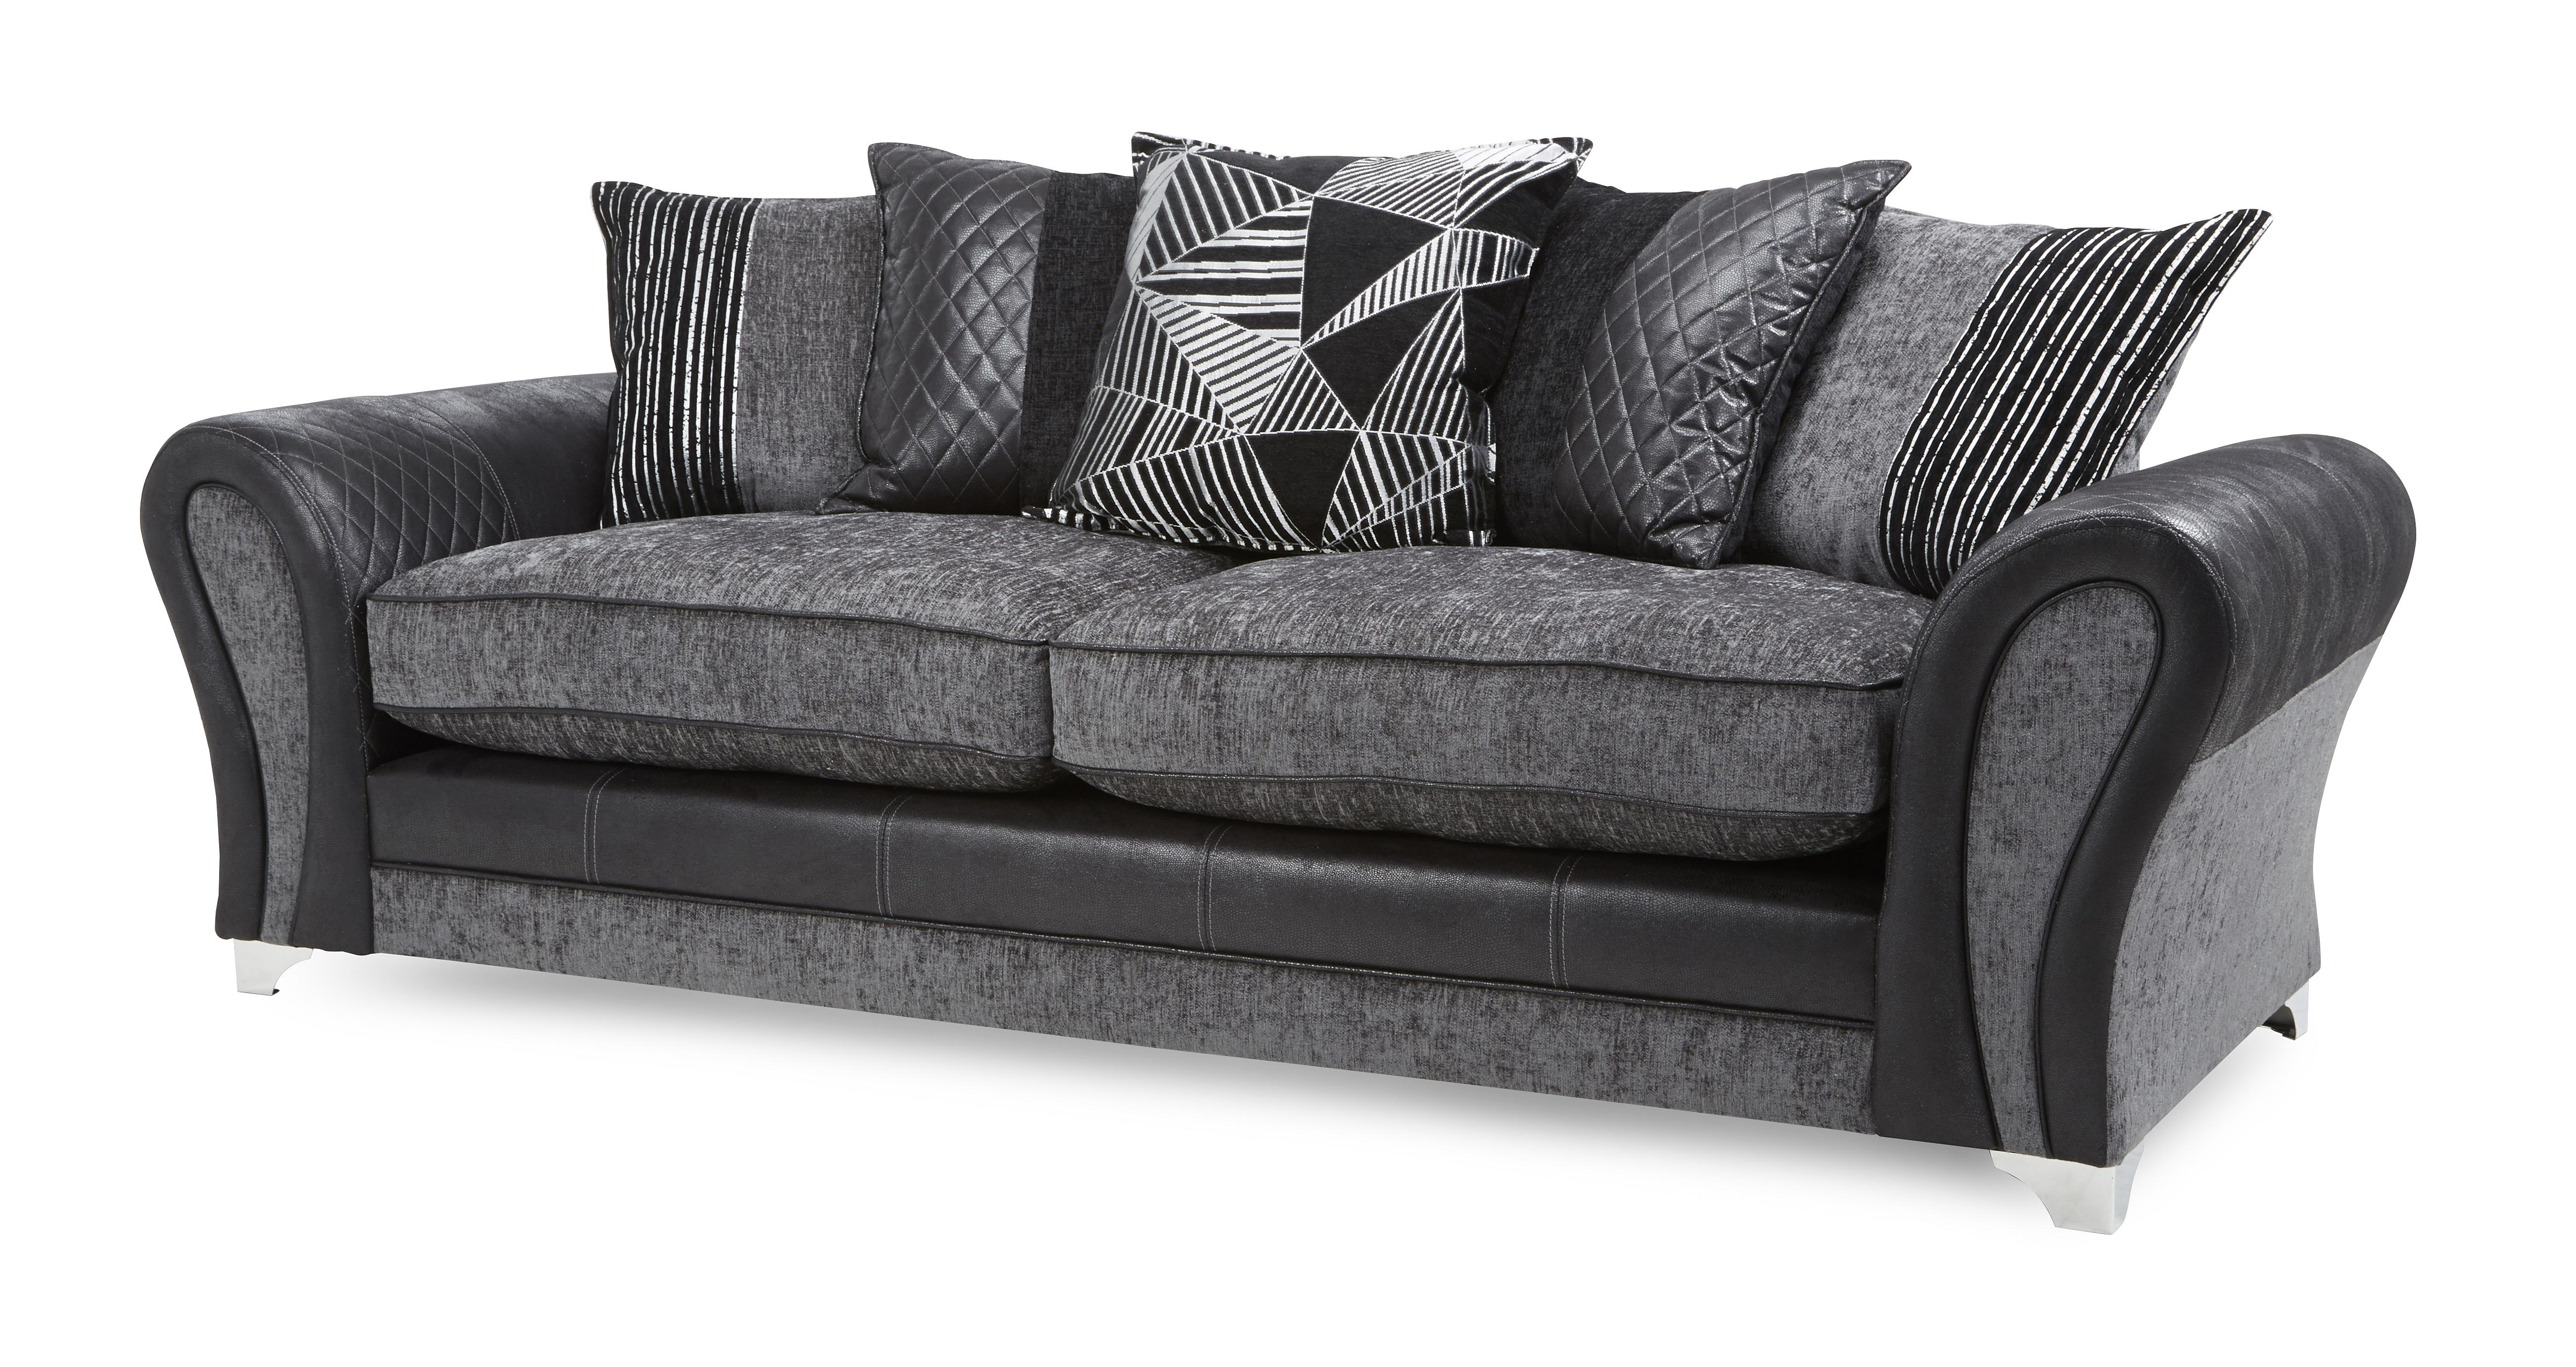 ex display sofa bed uk 2 pc raf sectional dfs starlet fabric 4 seater pillow back and formal